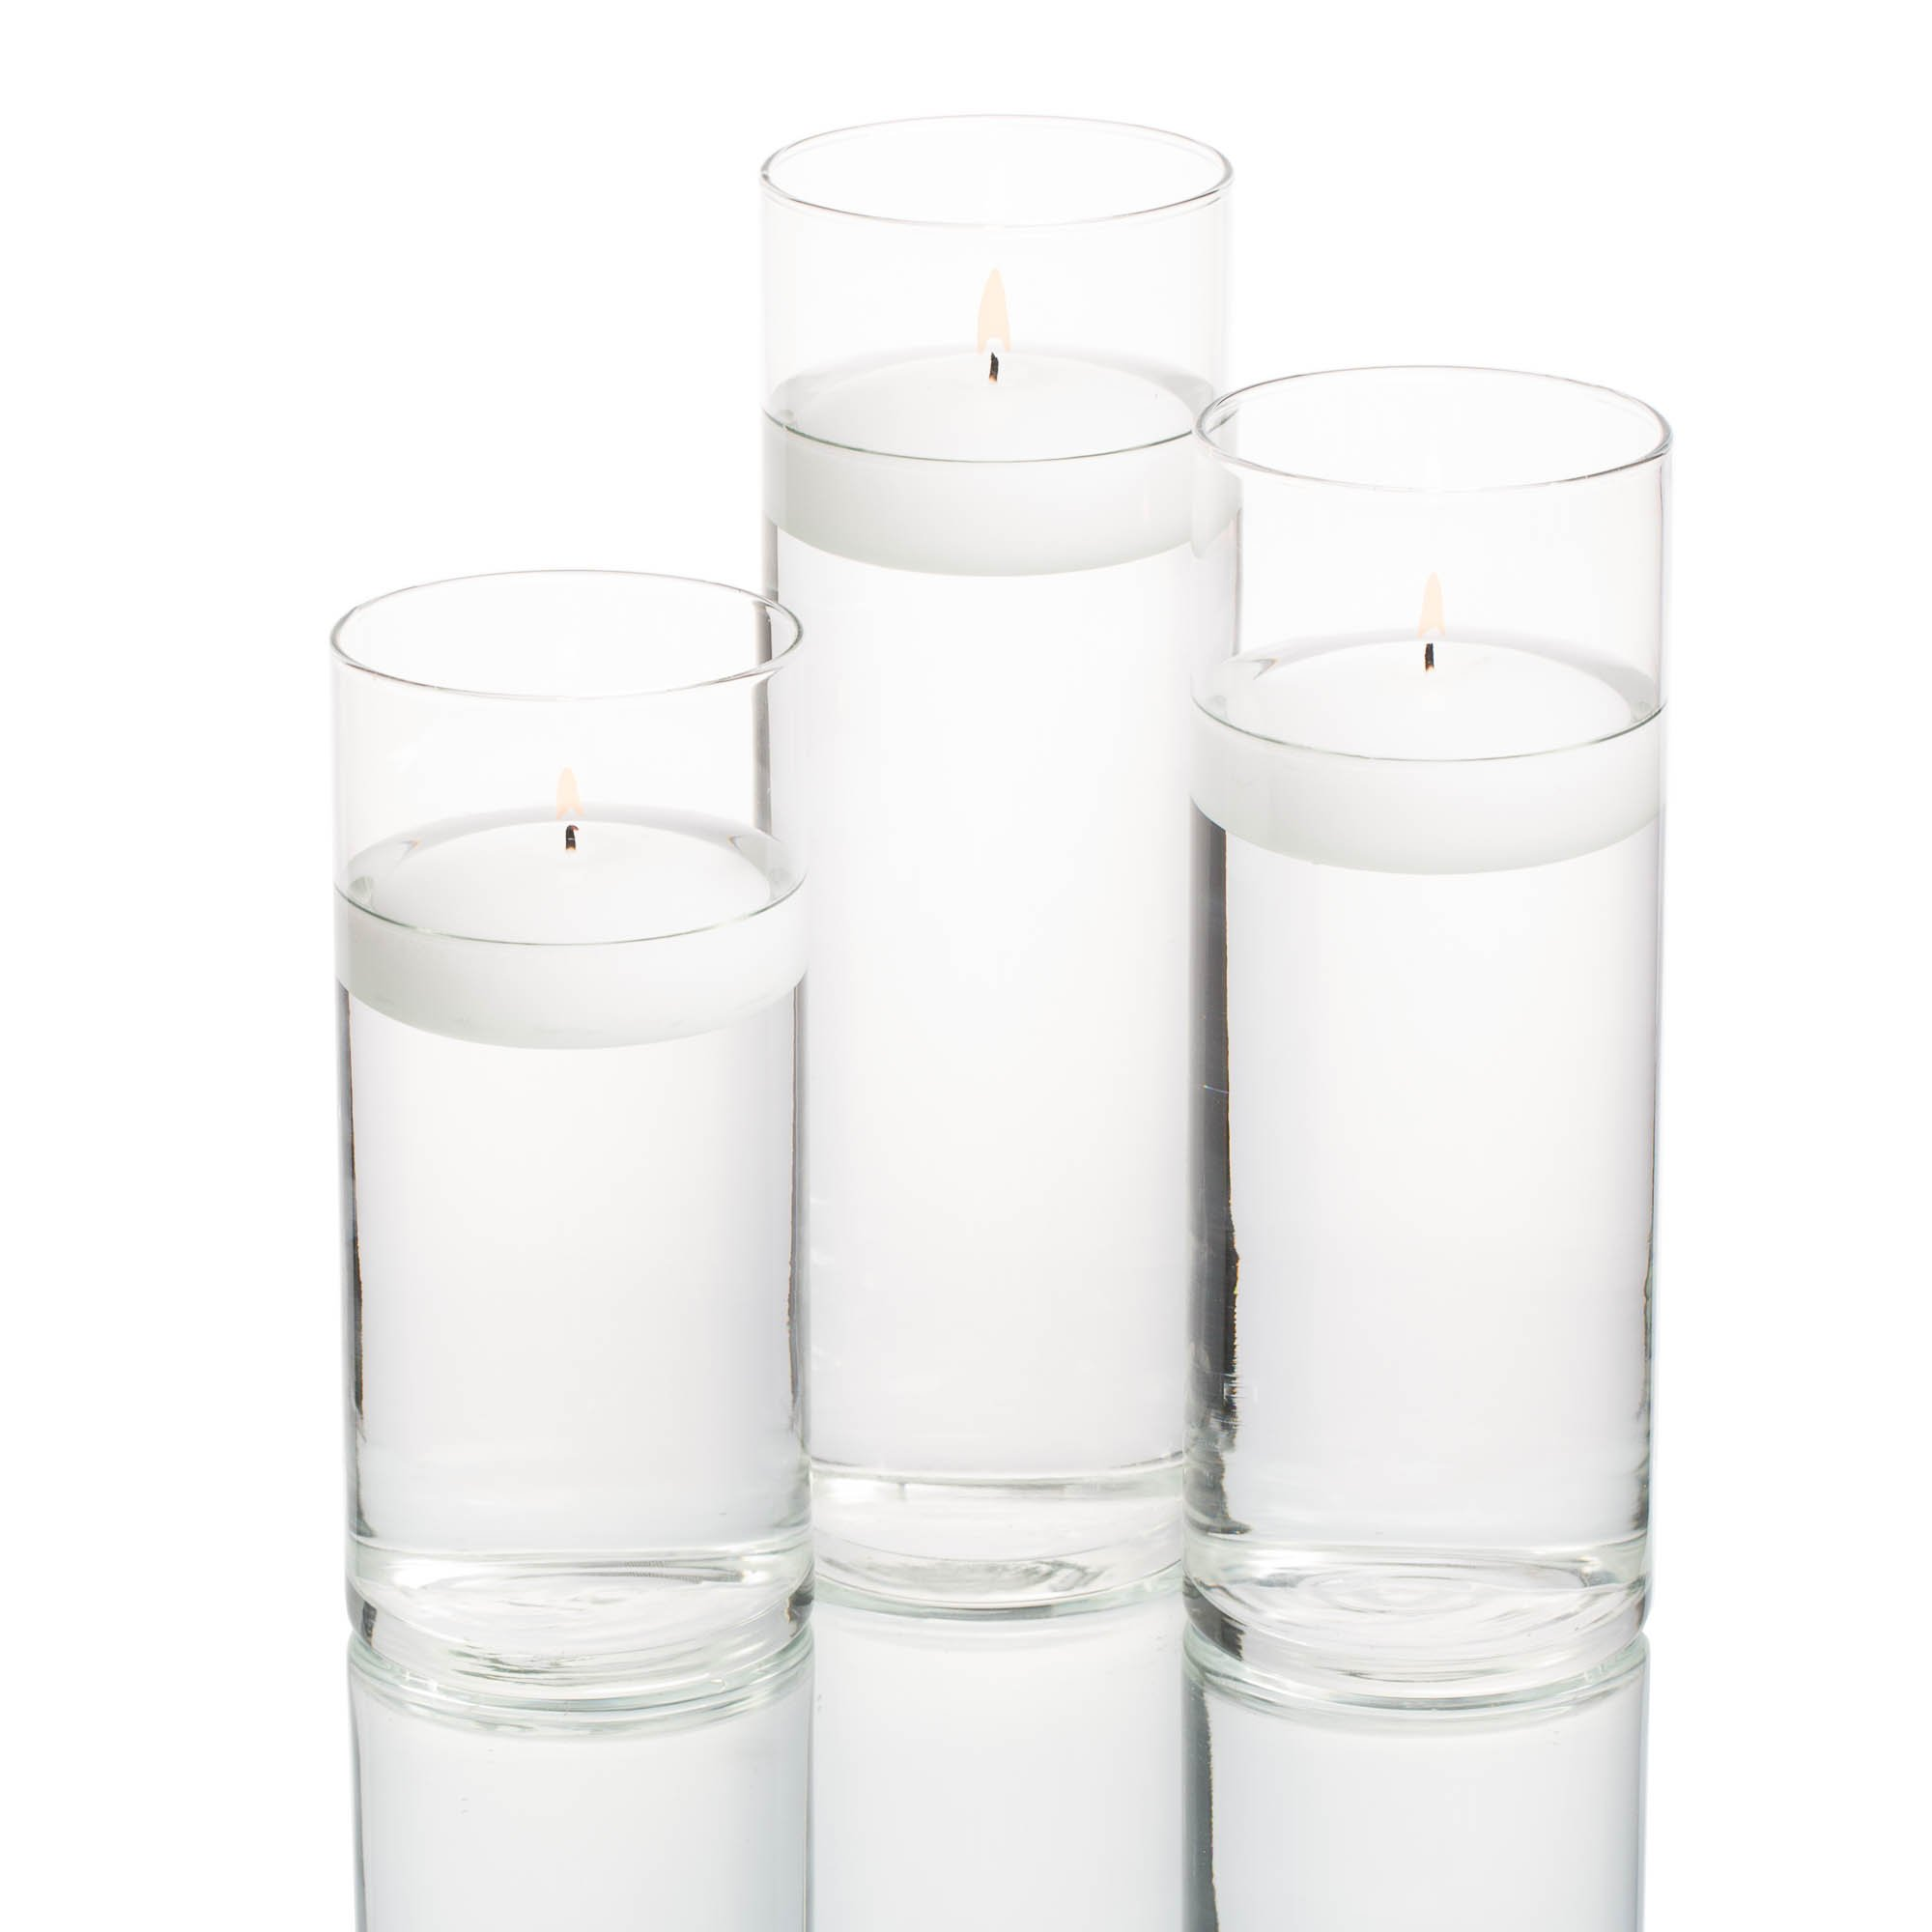 36 Eastland Cylinder Vases and 36 White 3'' Richland Floating Candles by Richland